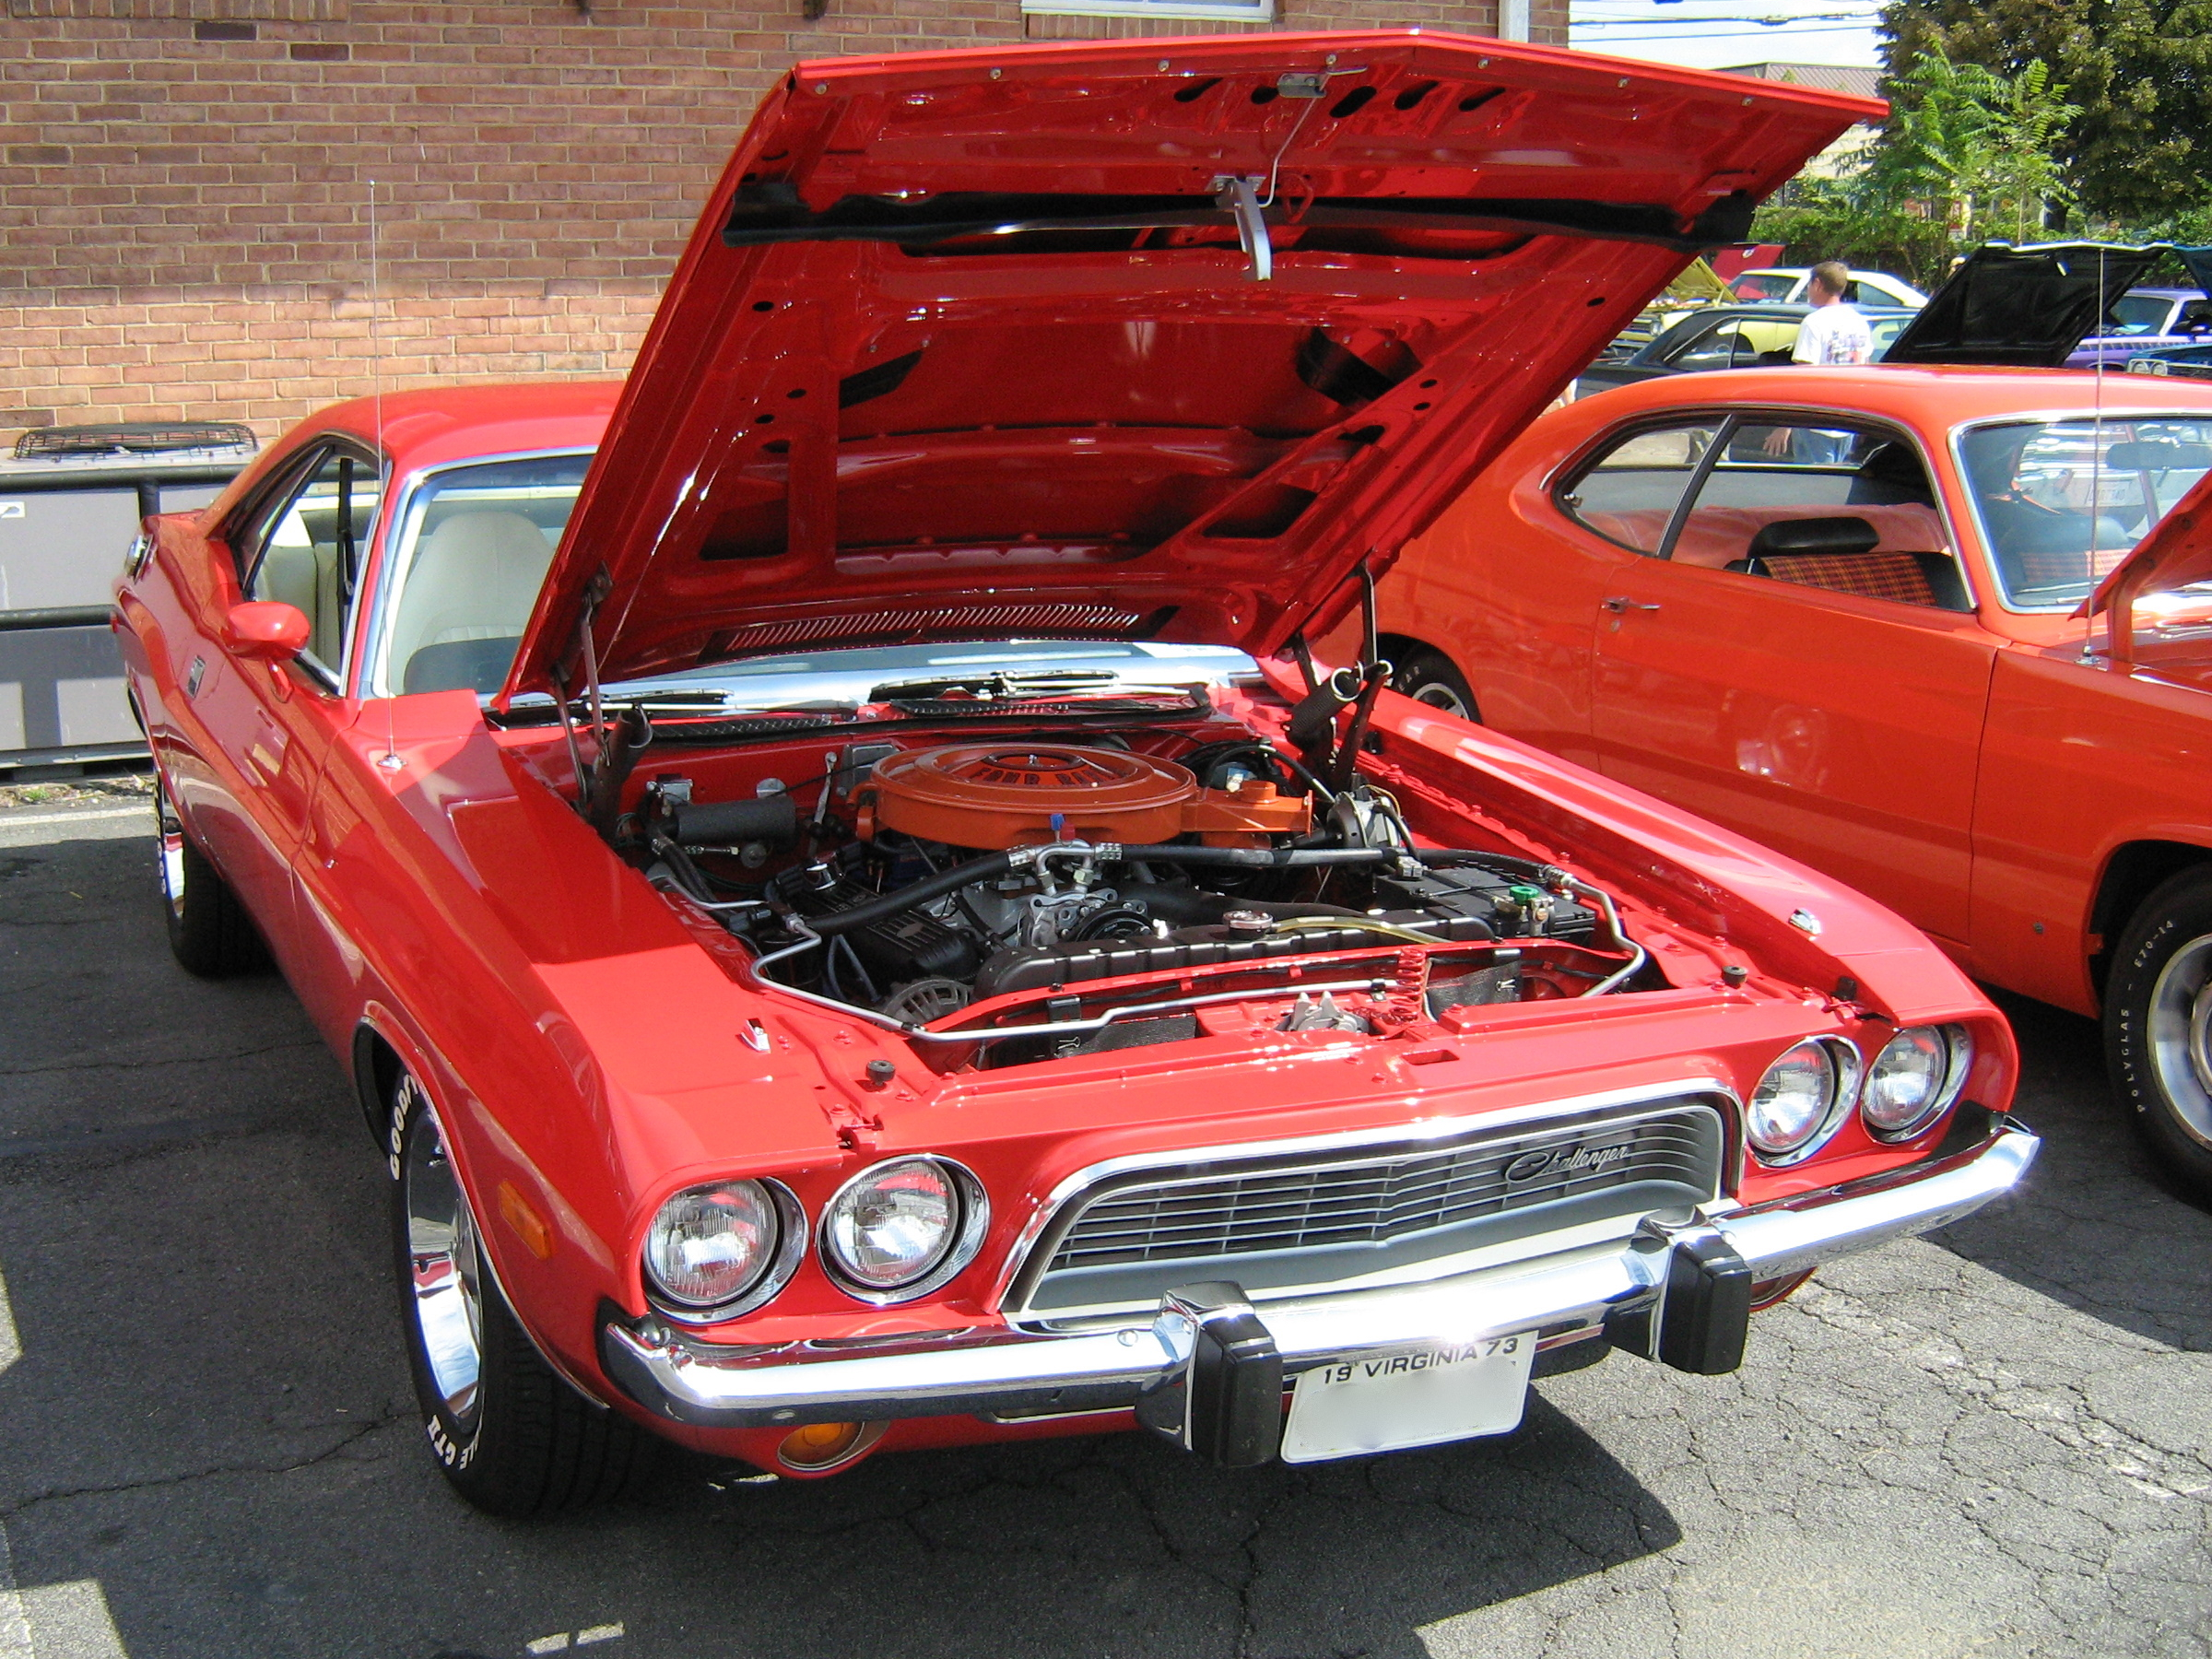 Description 1973 Dodge Challenger red.jpg